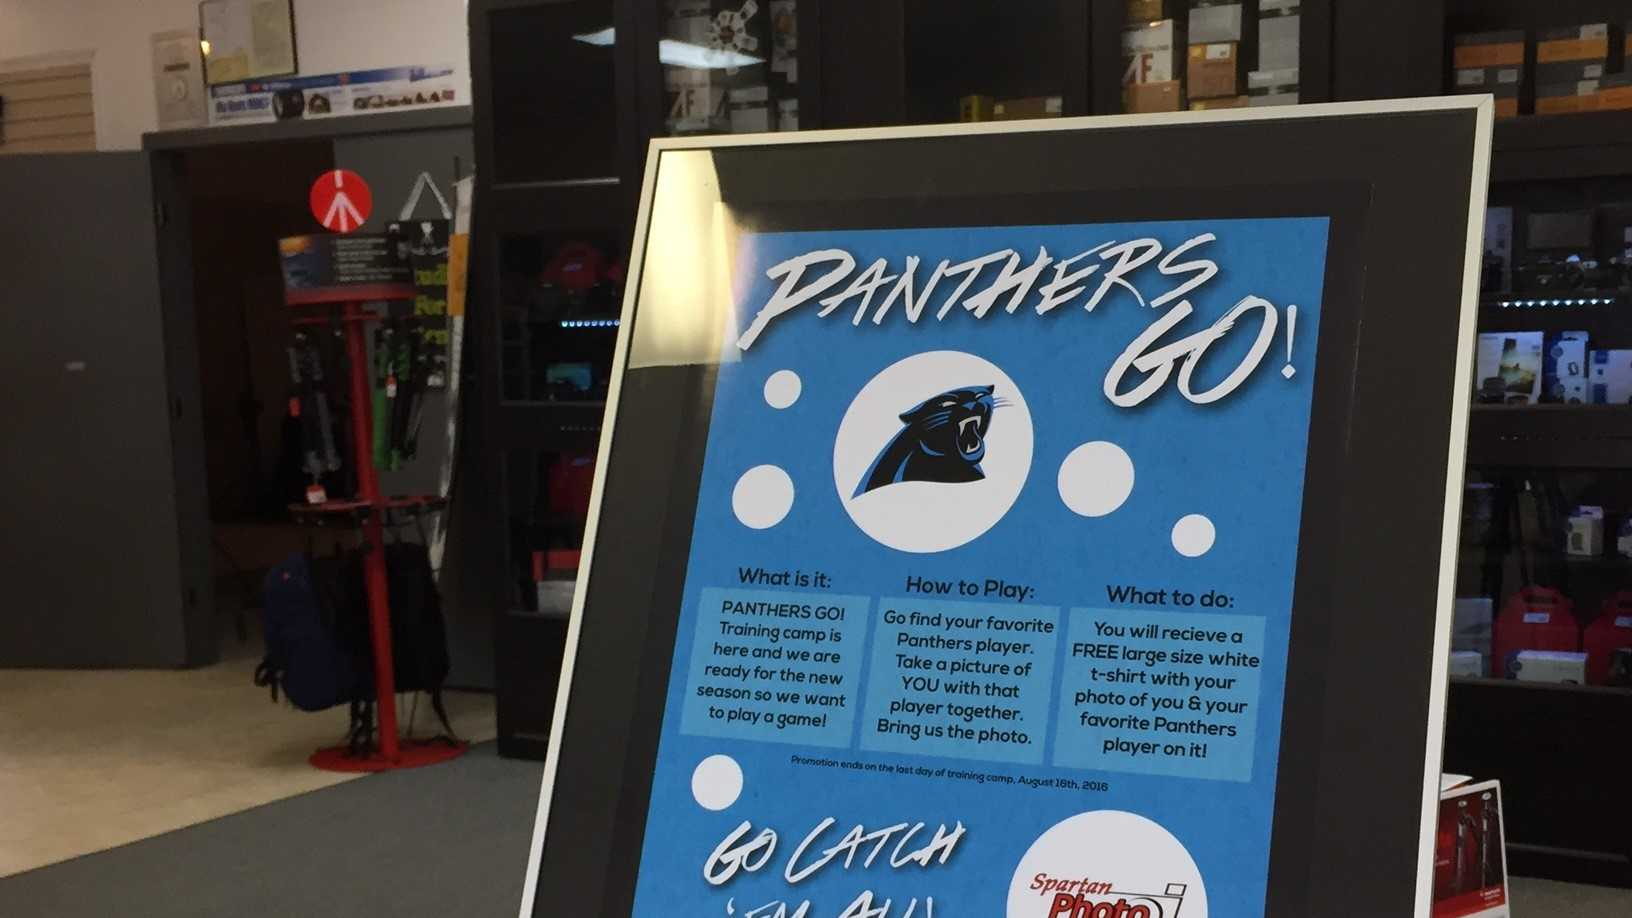 Some local businesses are offering deals to Panthers fans who show their pride during training camp.